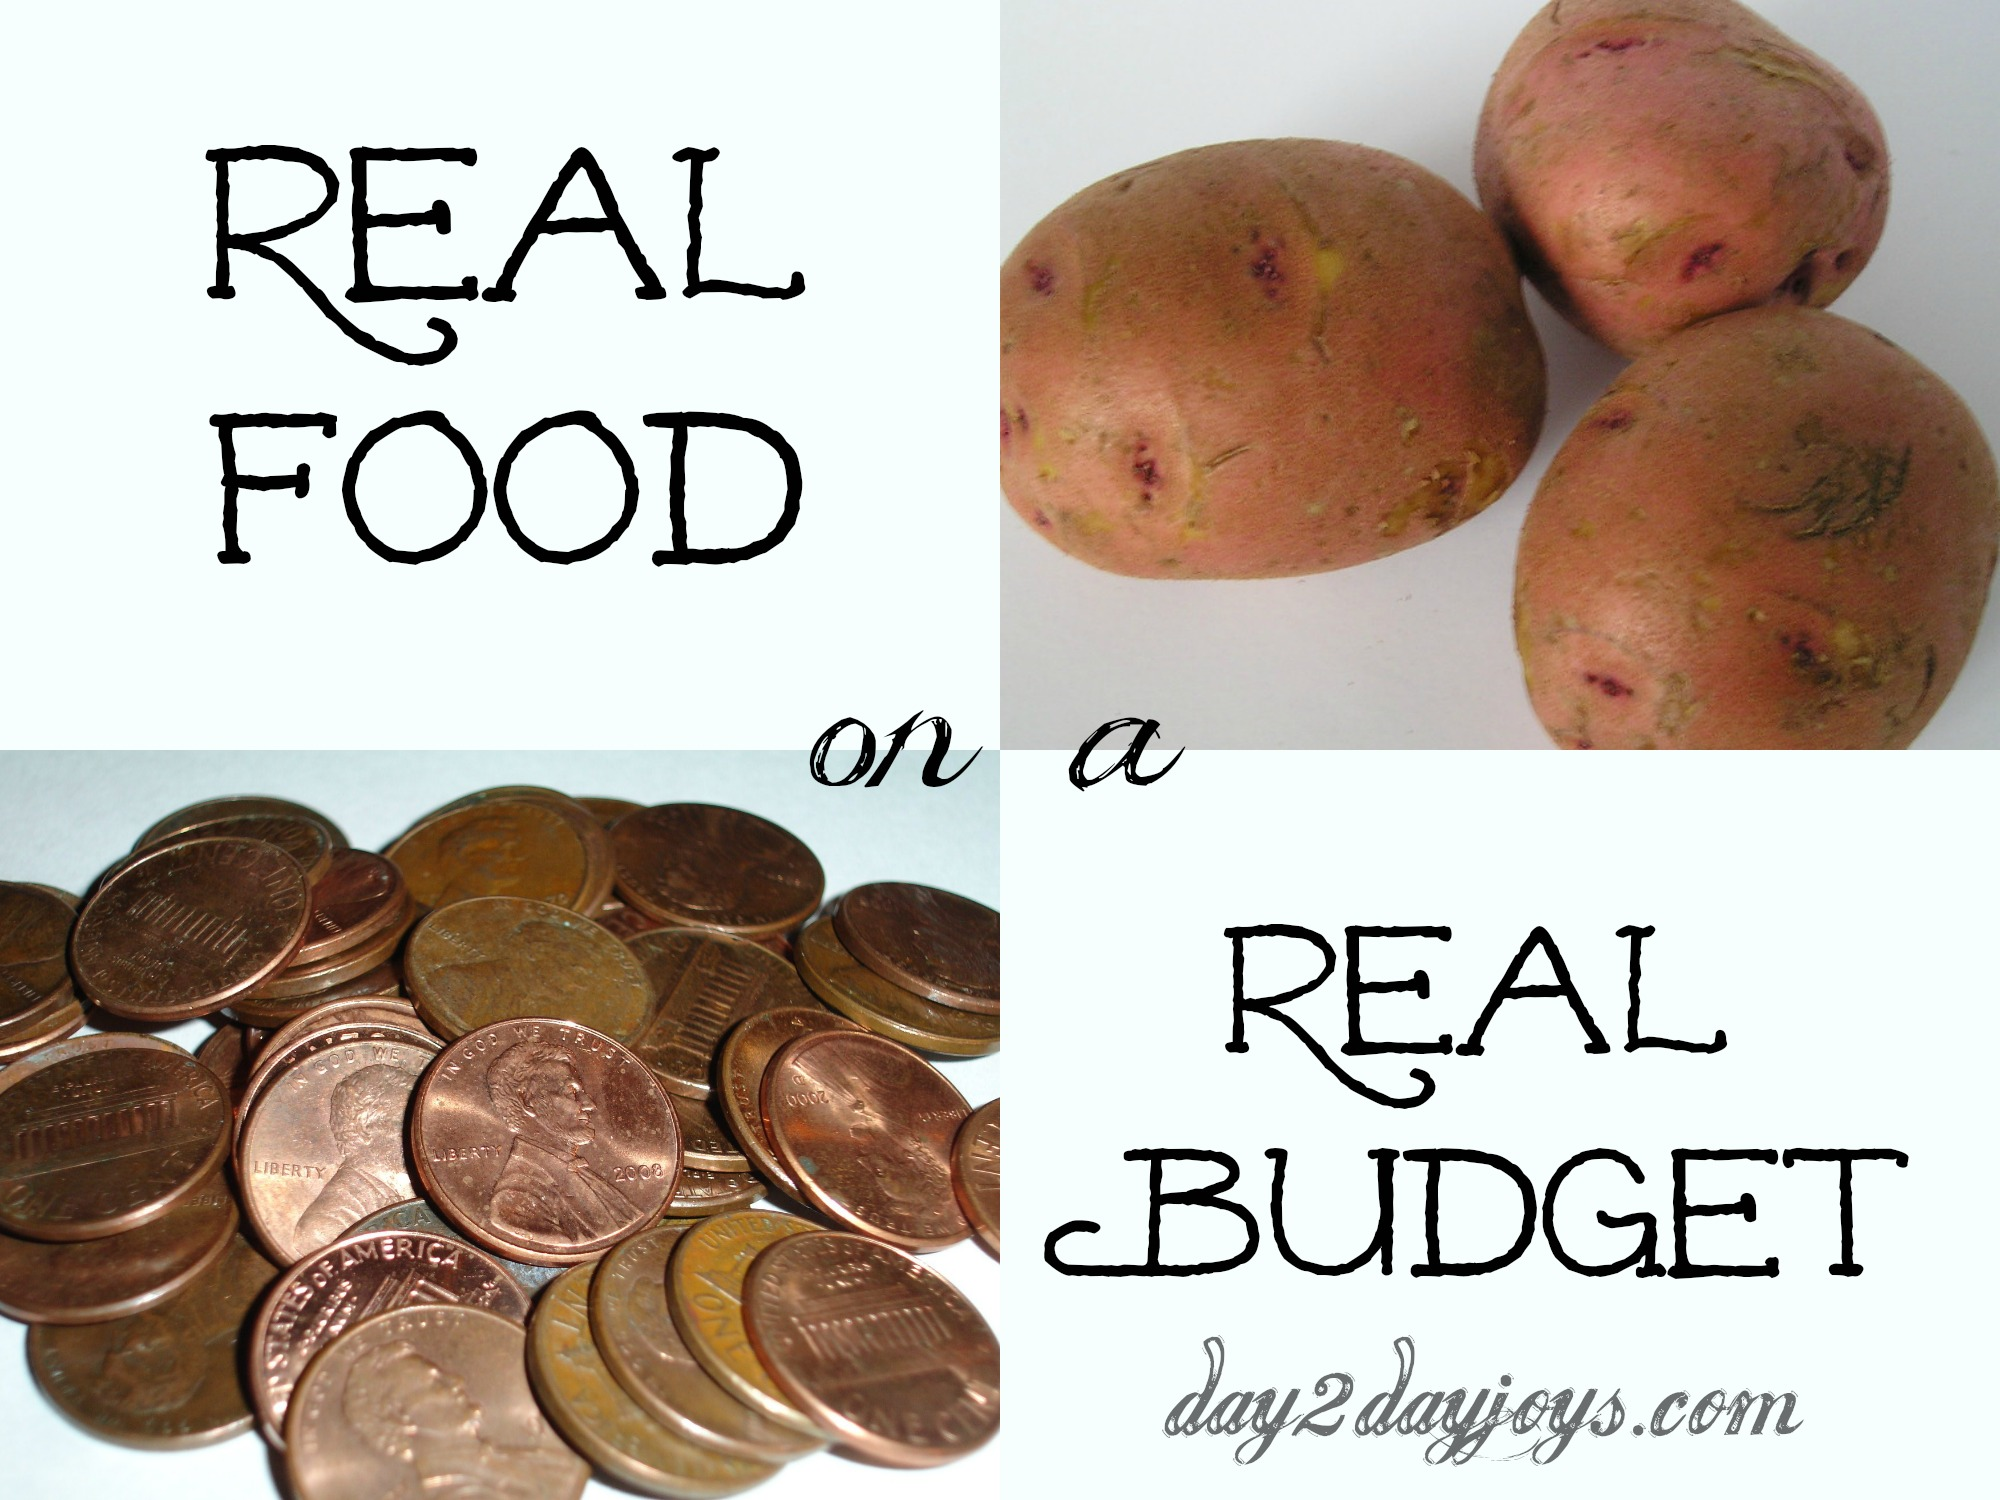 Real Food on a Real Budget, Get tips for saving money while eating good foods from Day2DayJoys.com